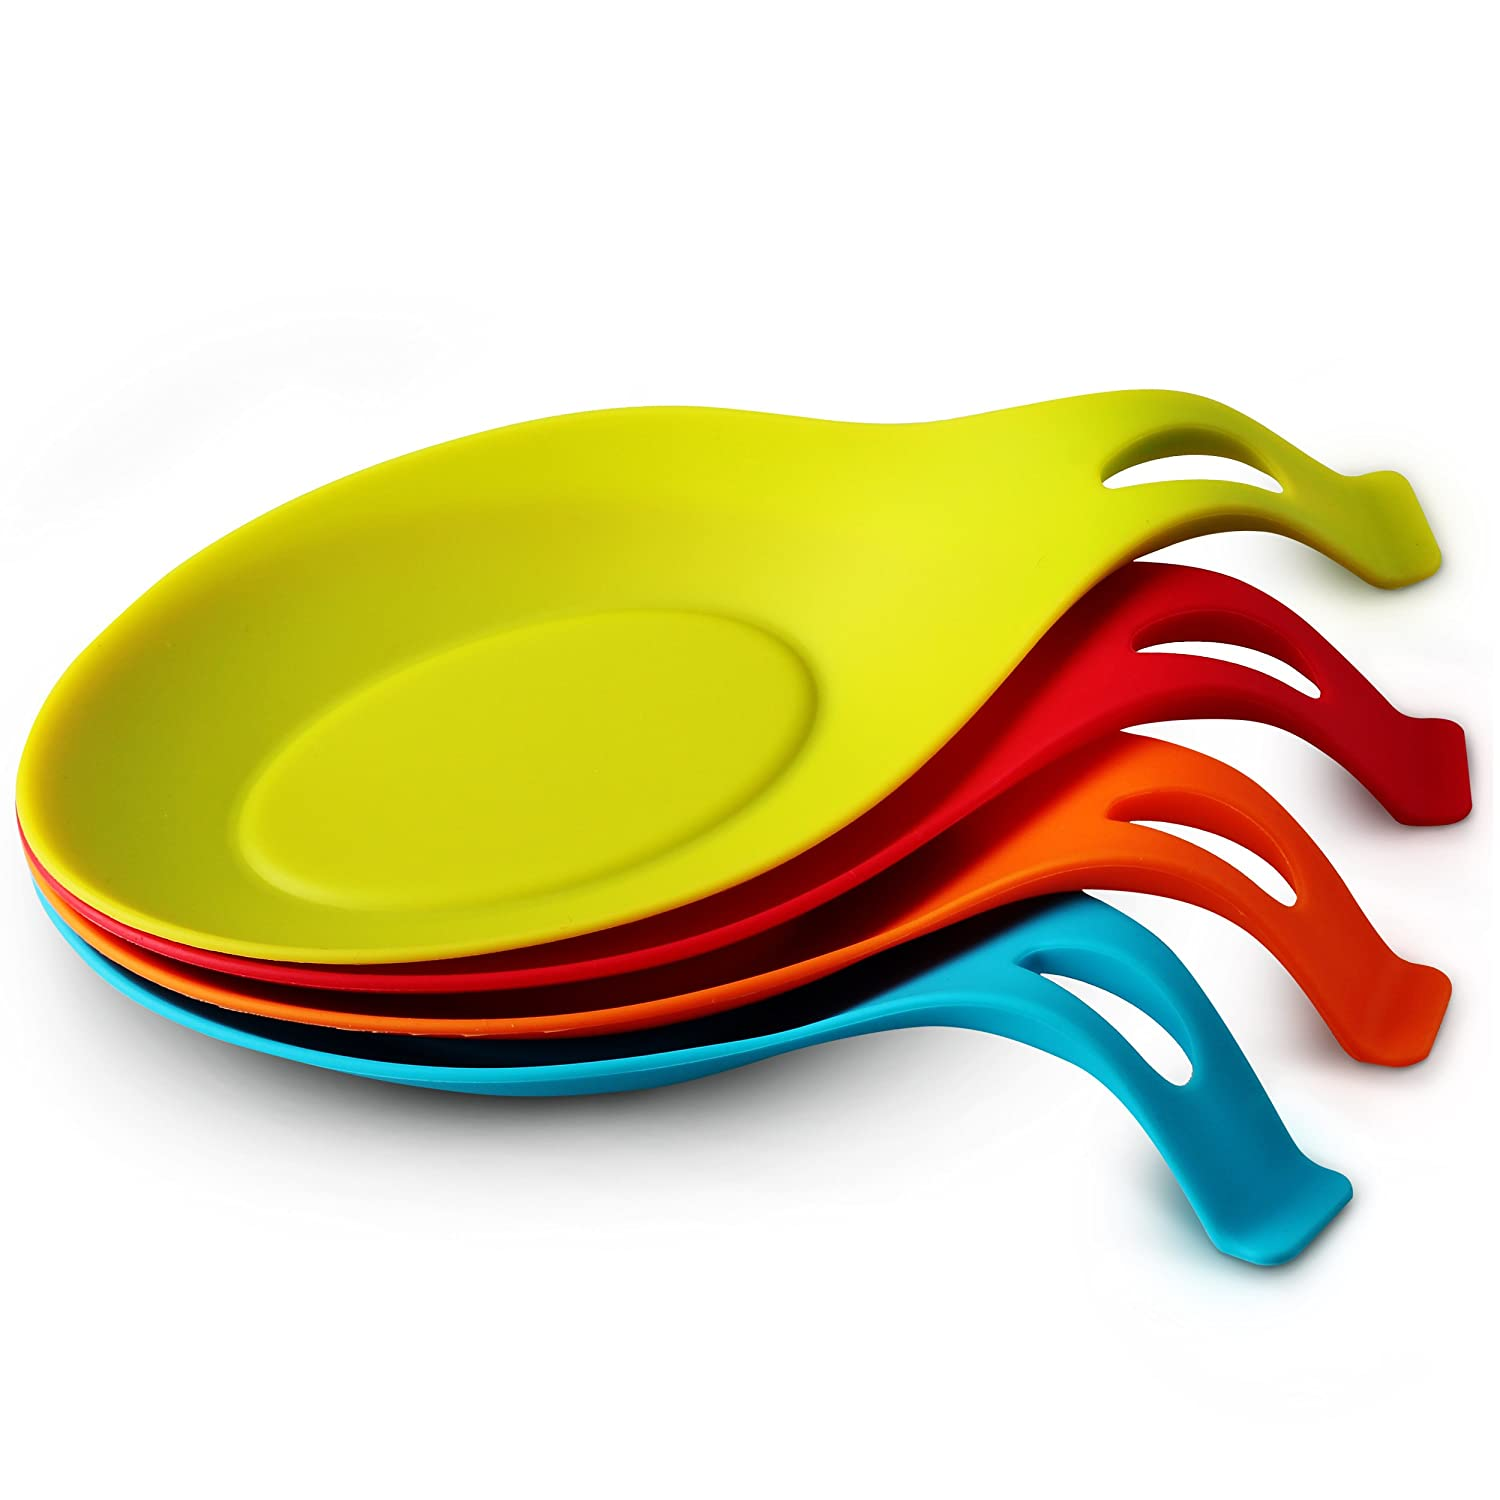 ORBLUE Silicone Spoon Rest SYNCHKG099349